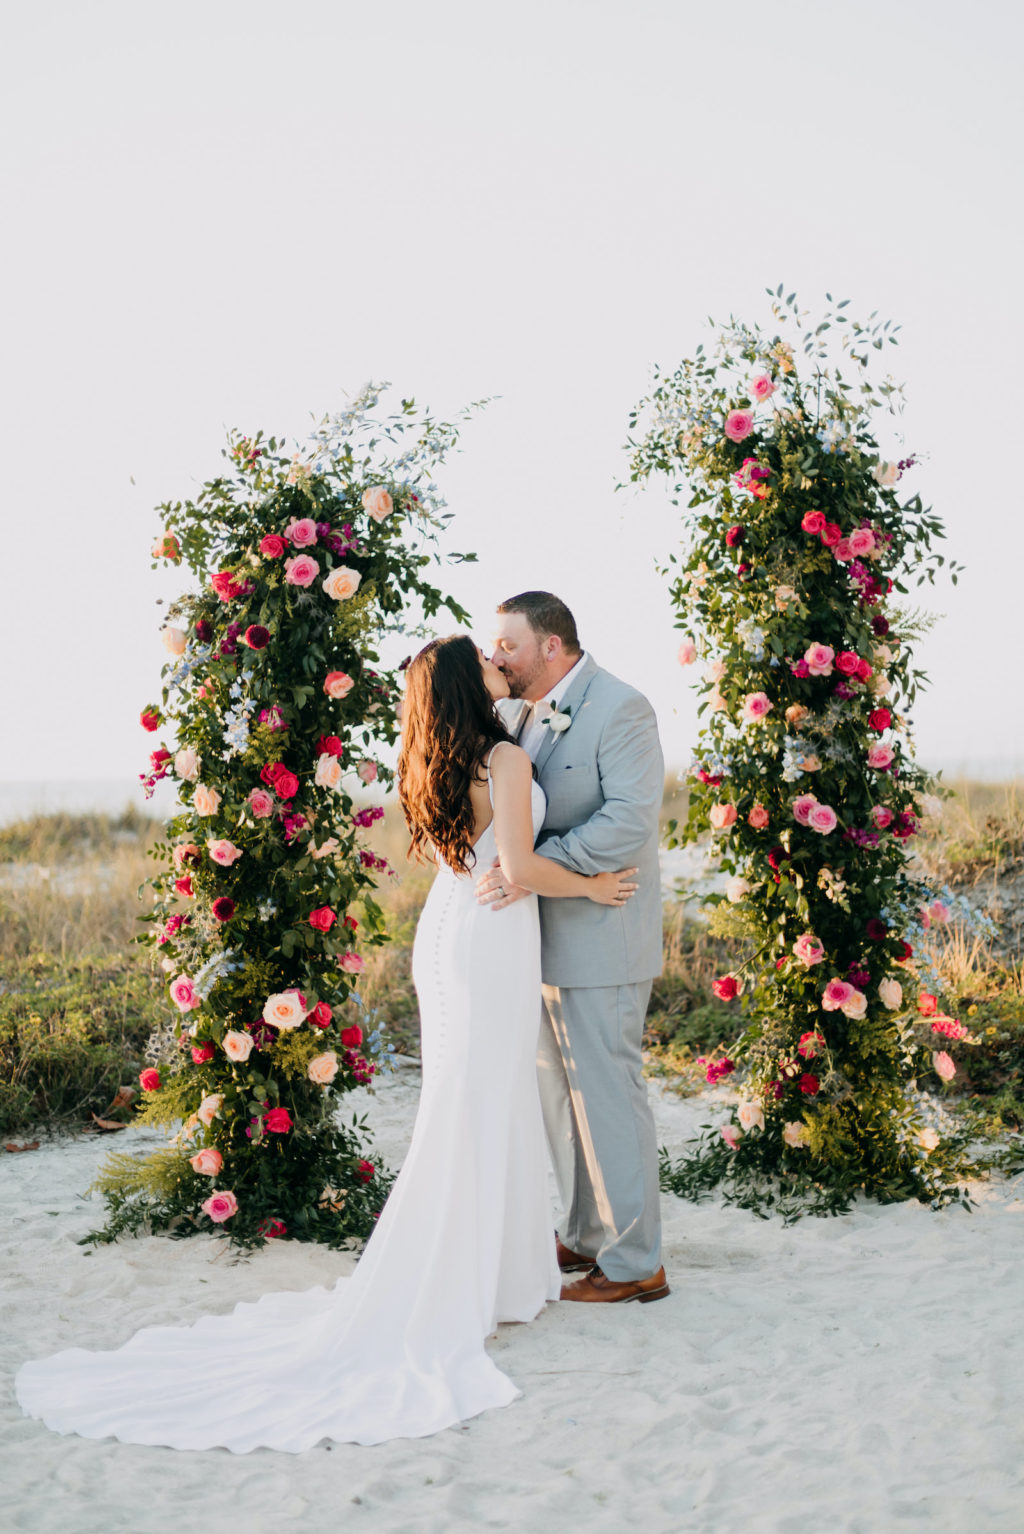 Blush Pink and Fuchsia Roses and Greenery Wedding Ceremony Backdrop Arrangements | Bride and Groom and Son at Tampa St Pete Florida COVID Destination Elopement Beach Wedding Ceremony | Amber McWhorter Photography